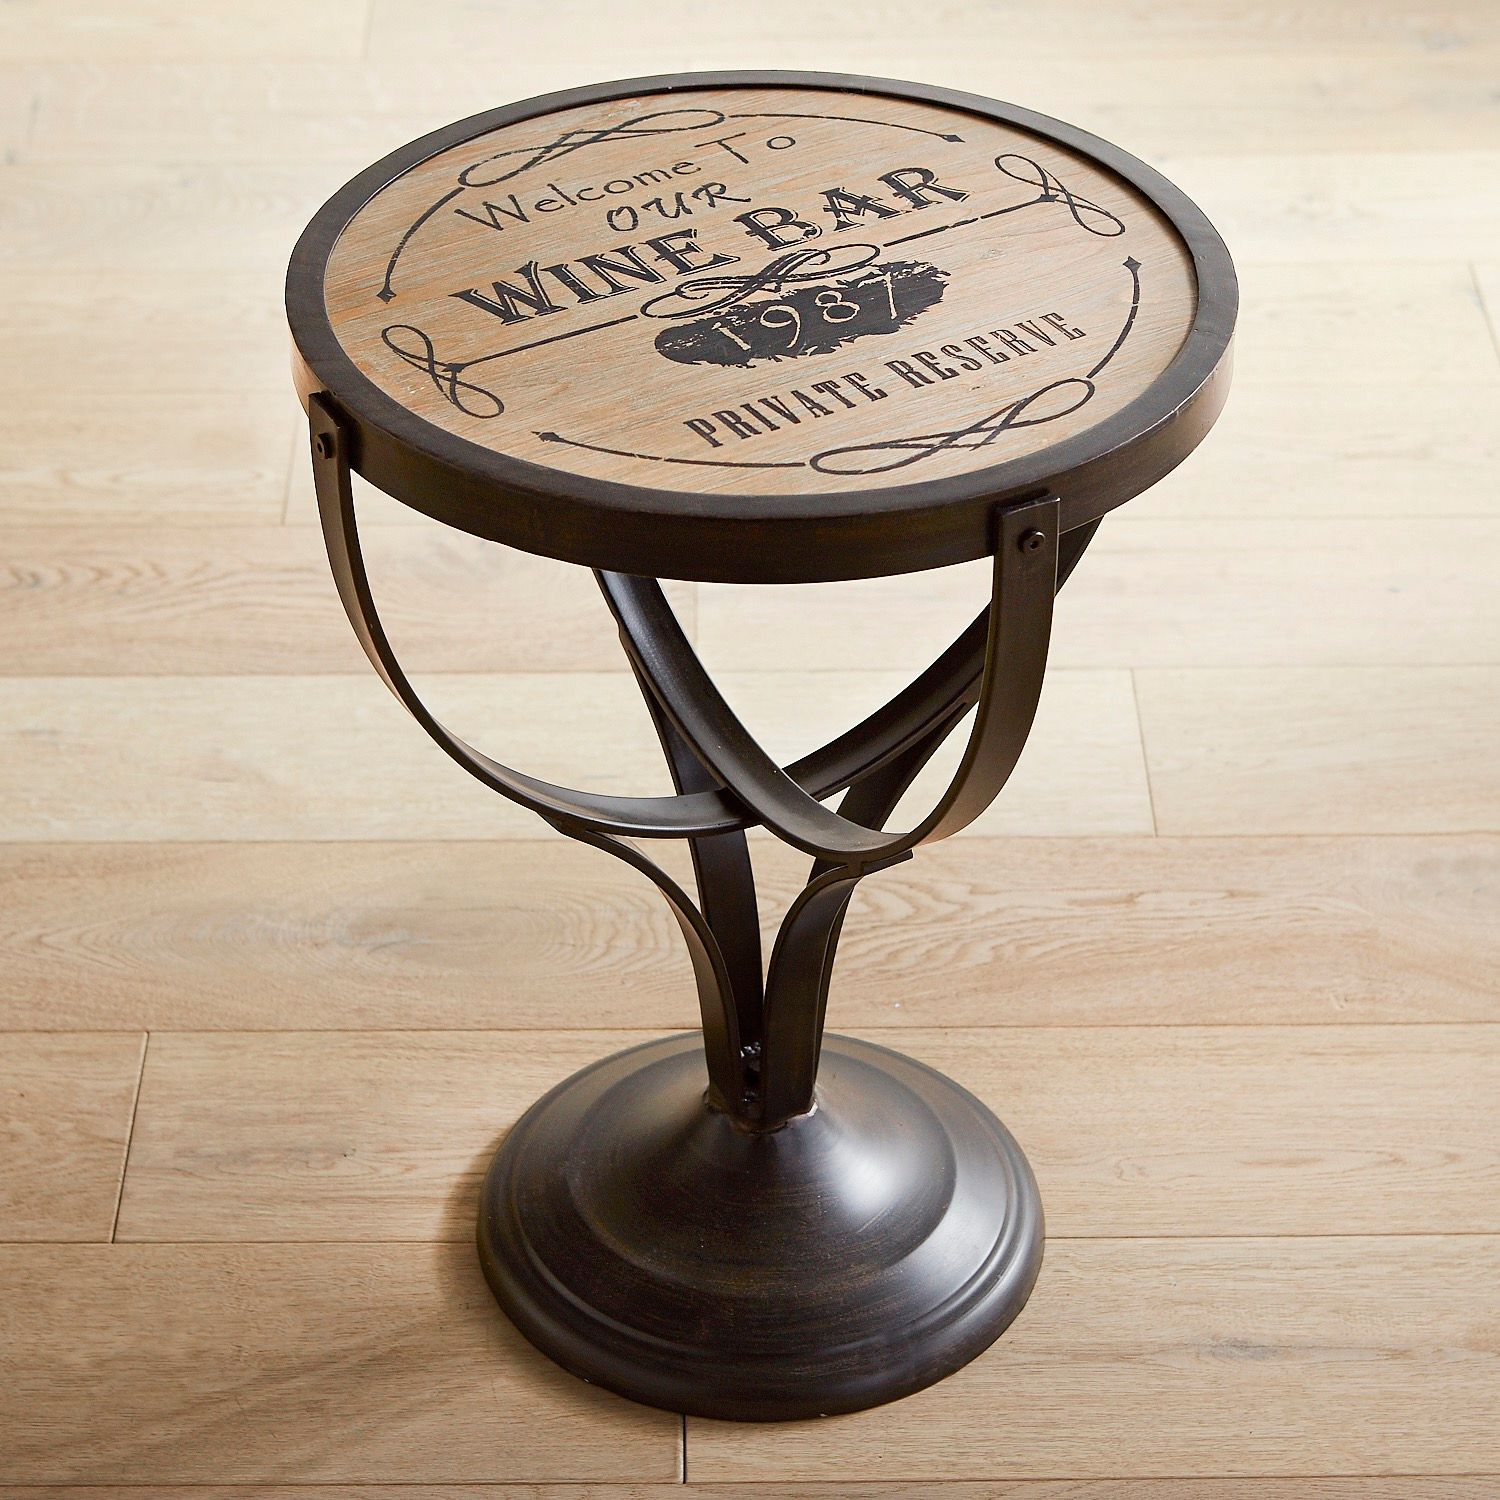 wine bar round accent table pier imports aluminium outdoor furniture small black side bedroom lights console glass patio vintage sofa designs nesting tables bell ikea storage